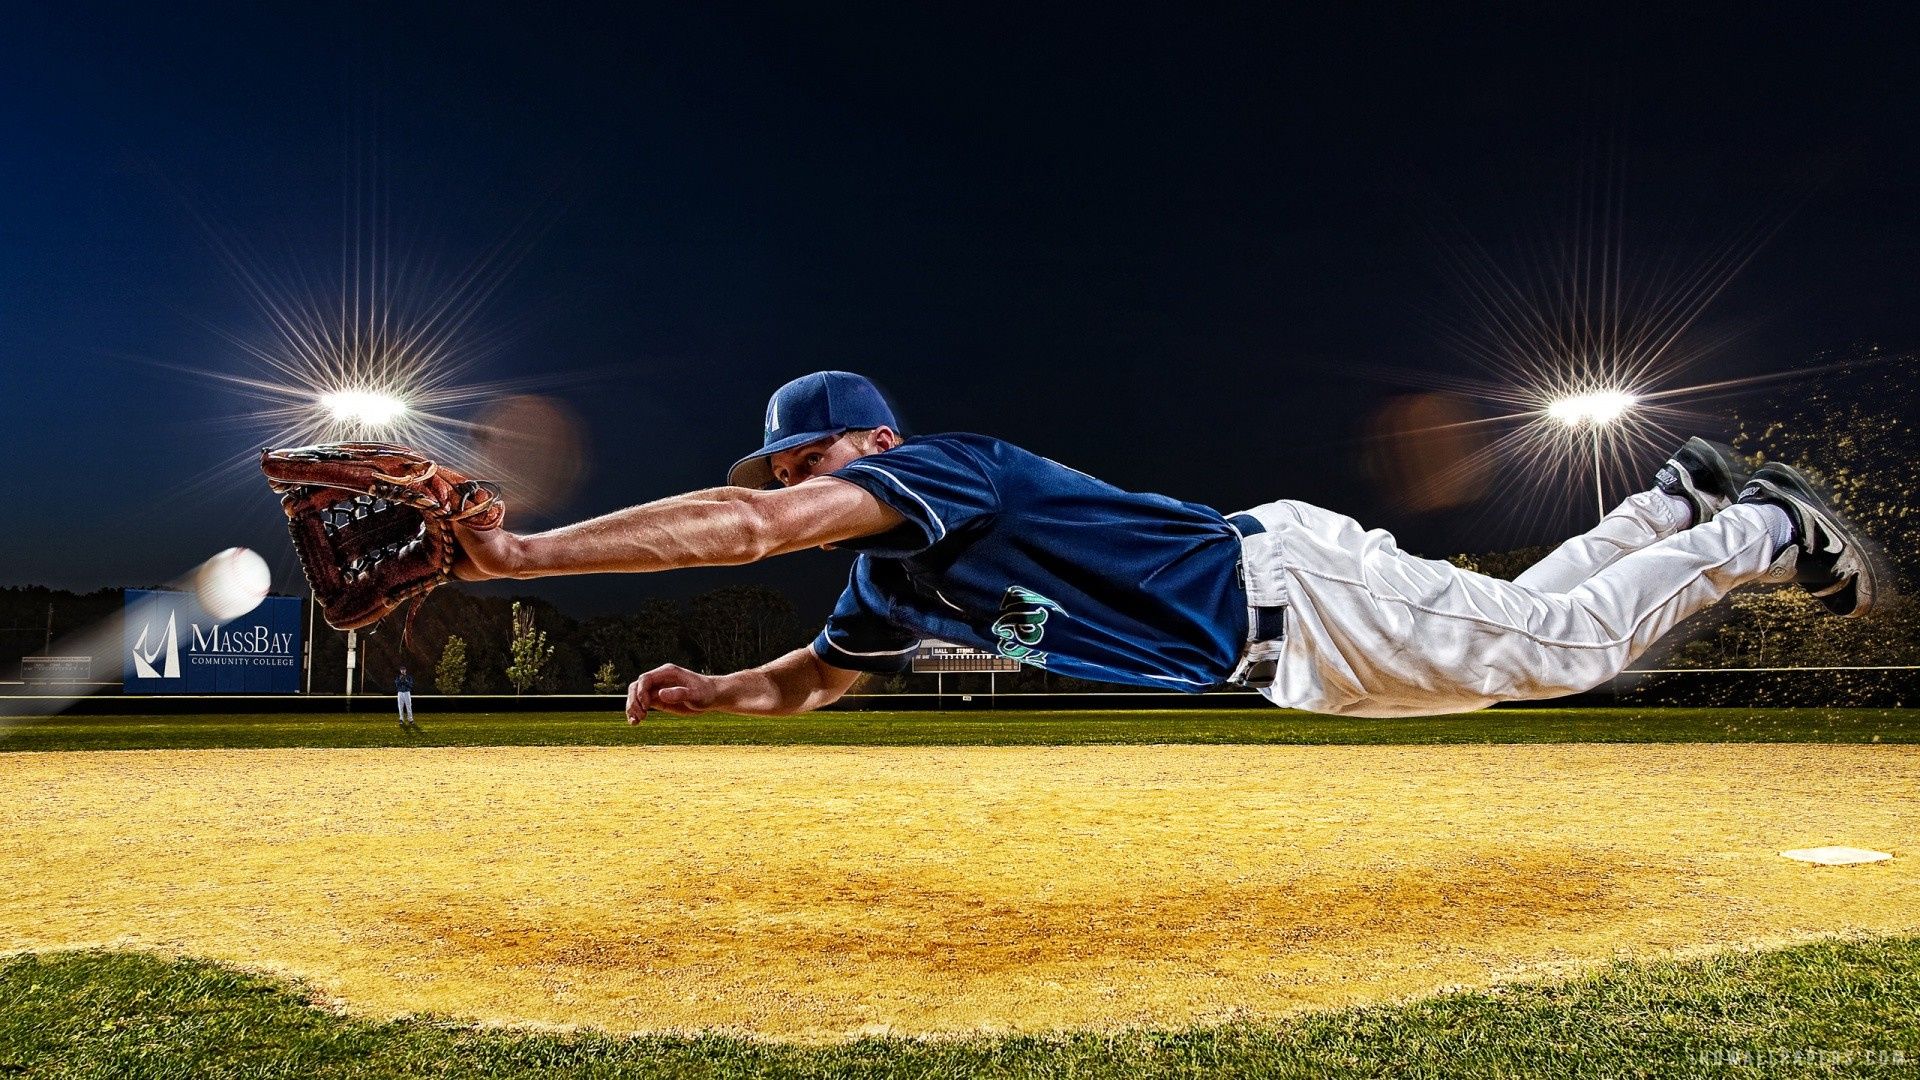 Baseball Wallpaper Collection For Free Download